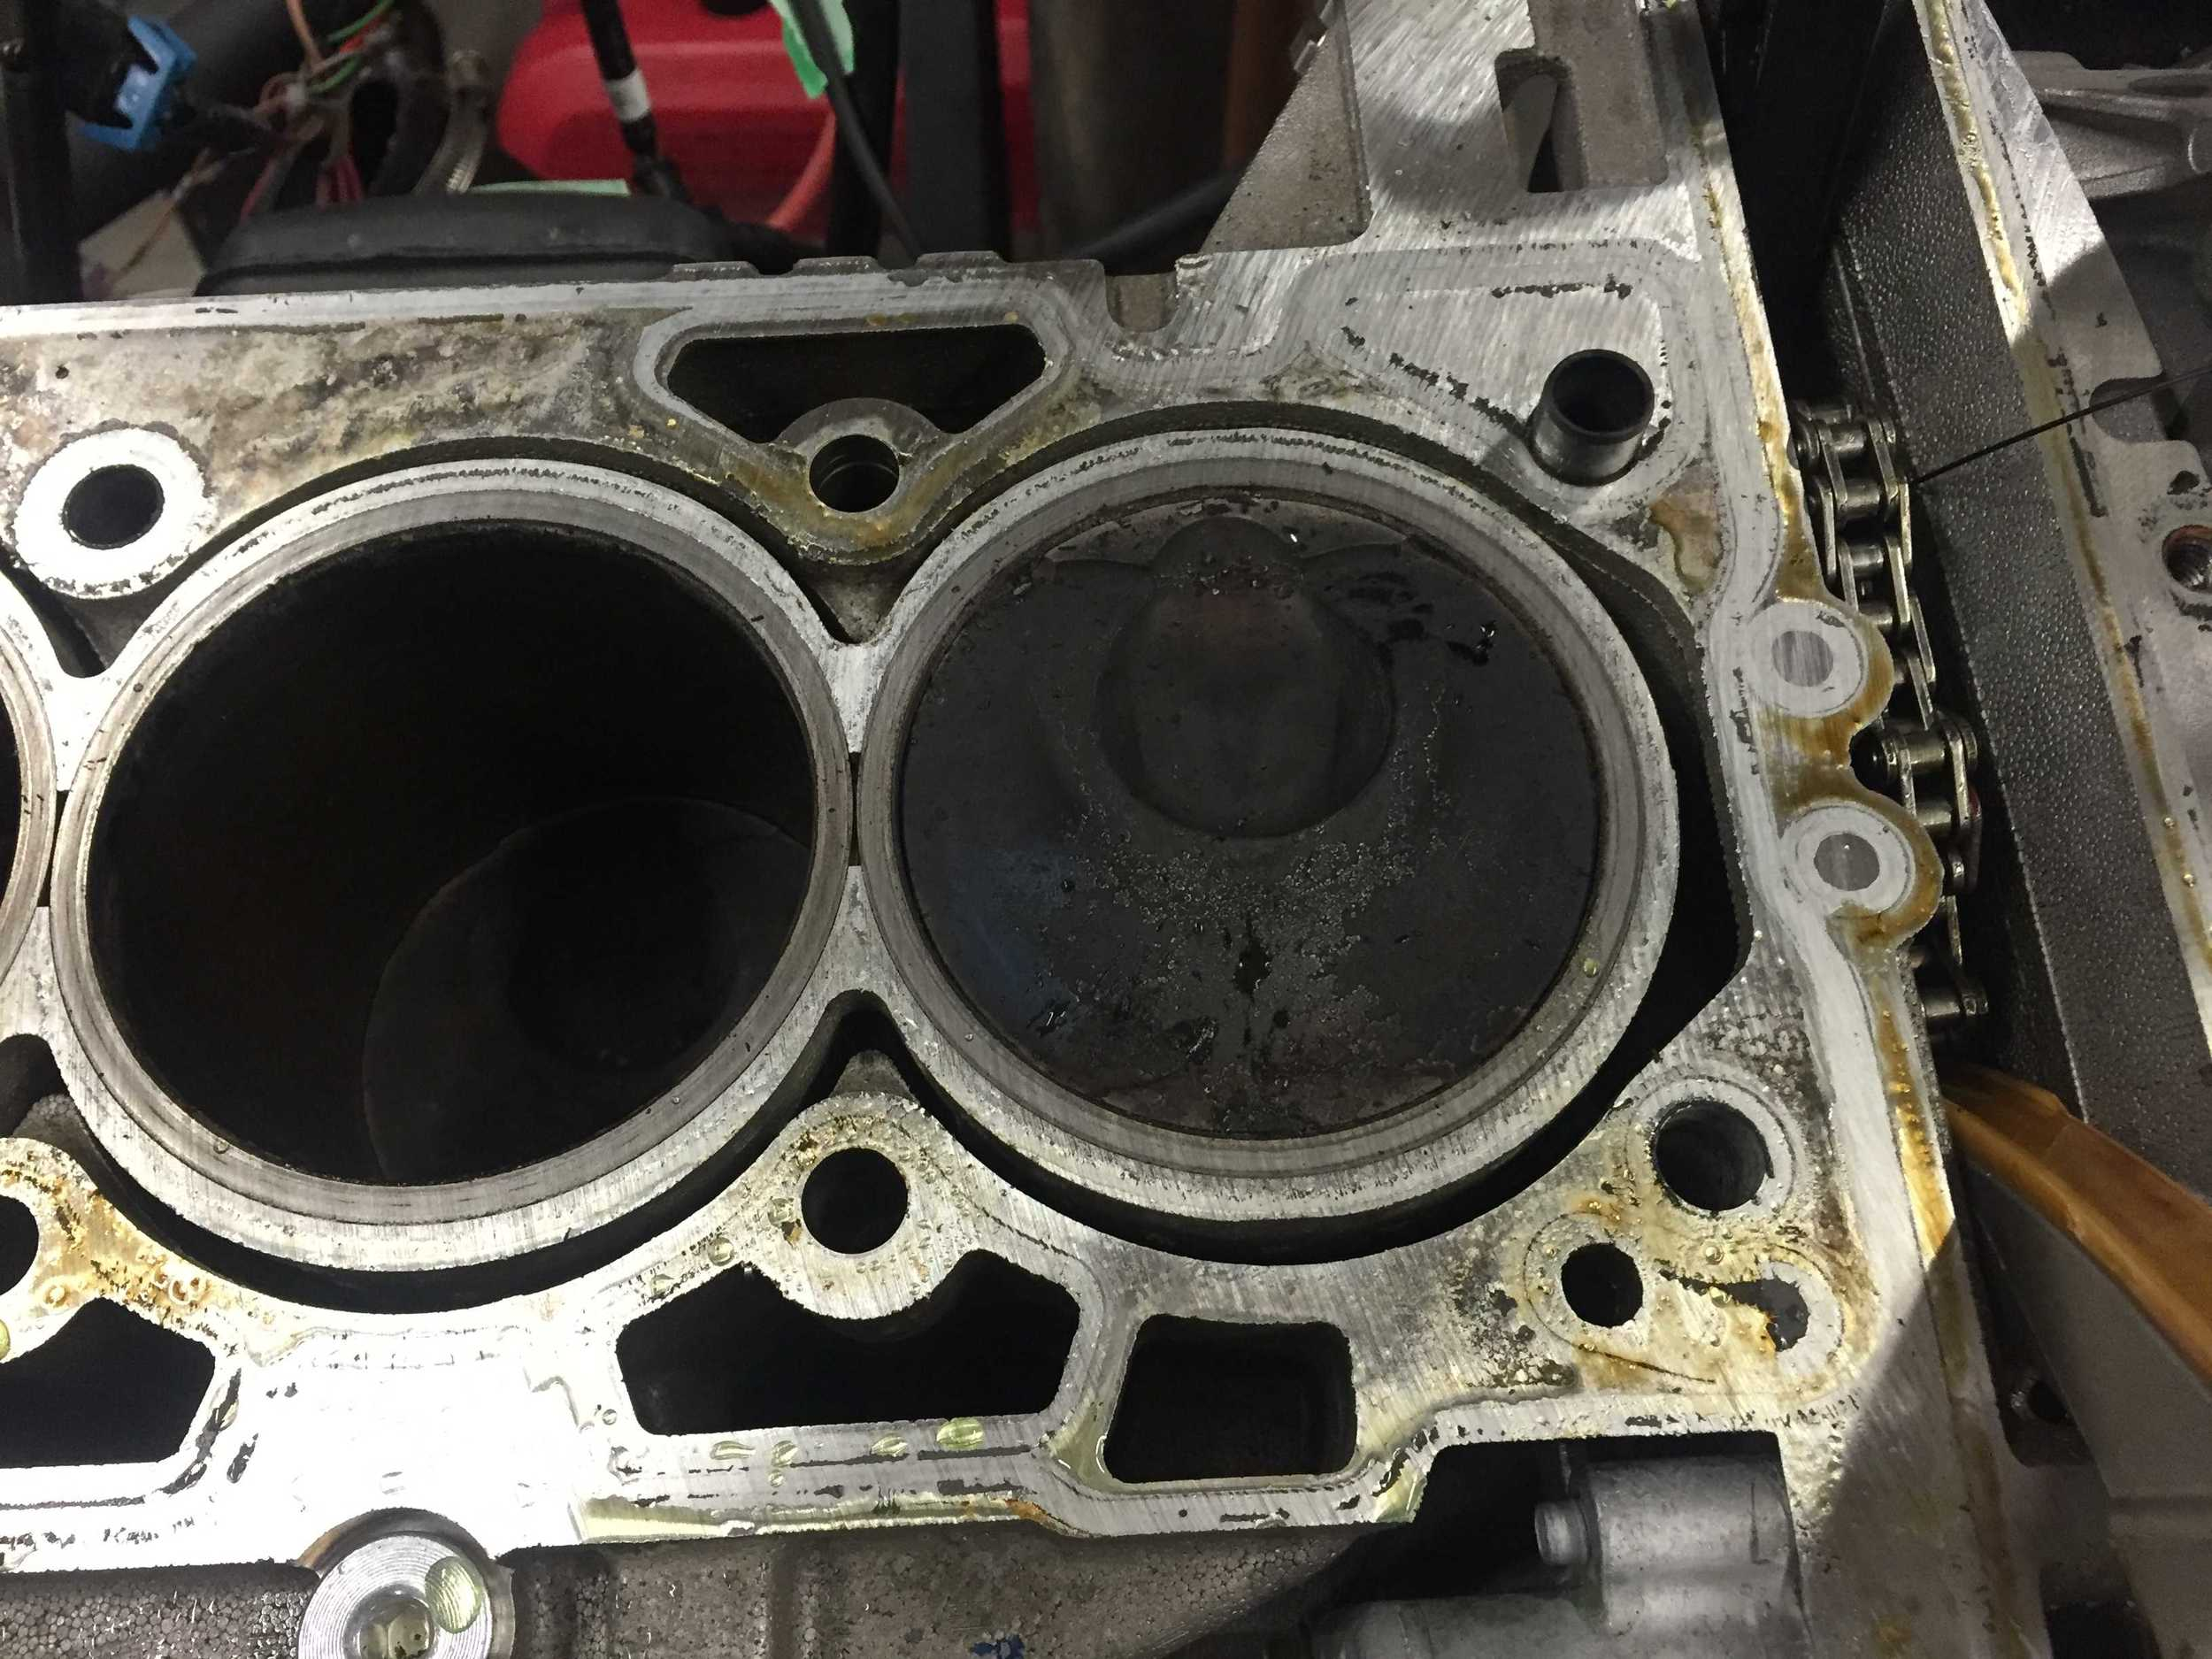 Cylinder head removed showing piston head.